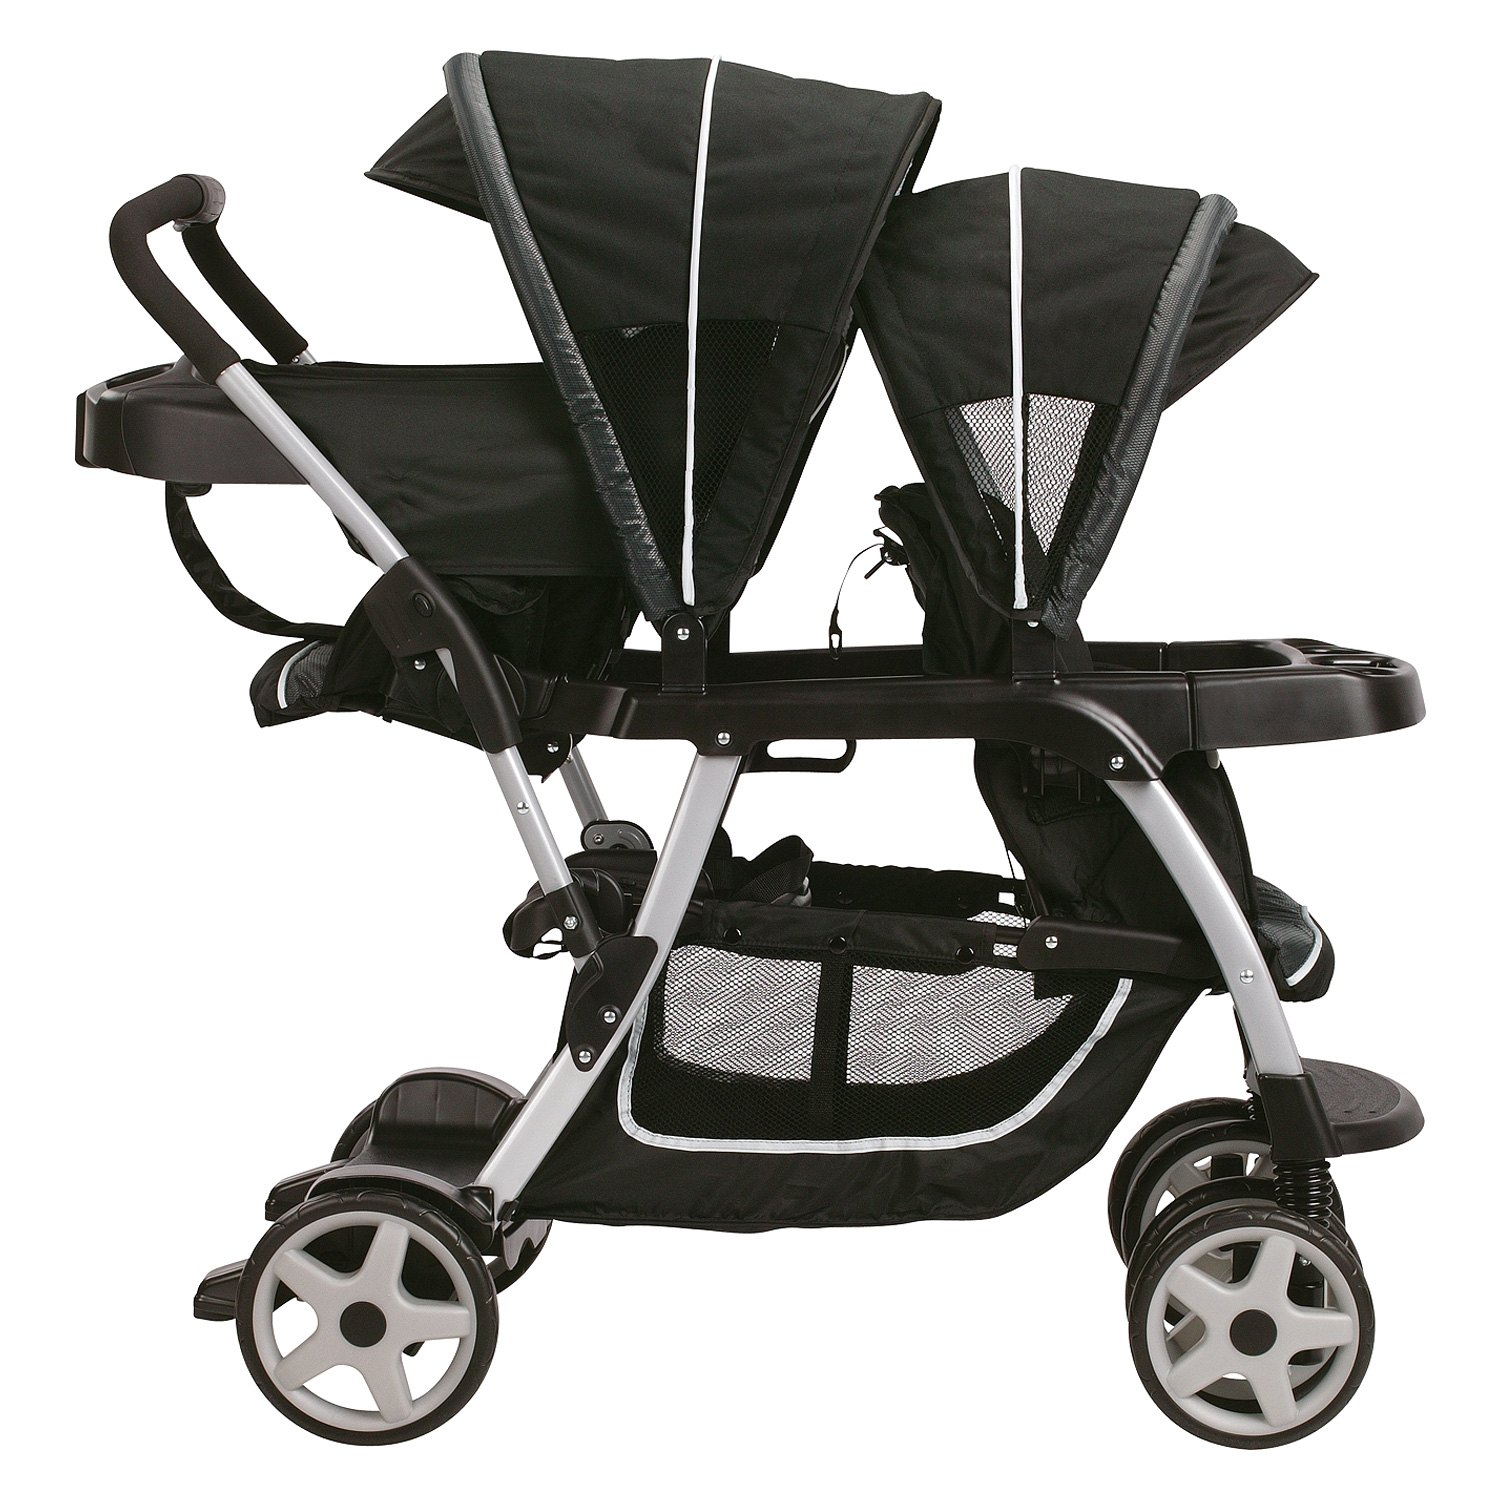 Graco Baby® - Ready2Grow™ Click Connect LX Stroller